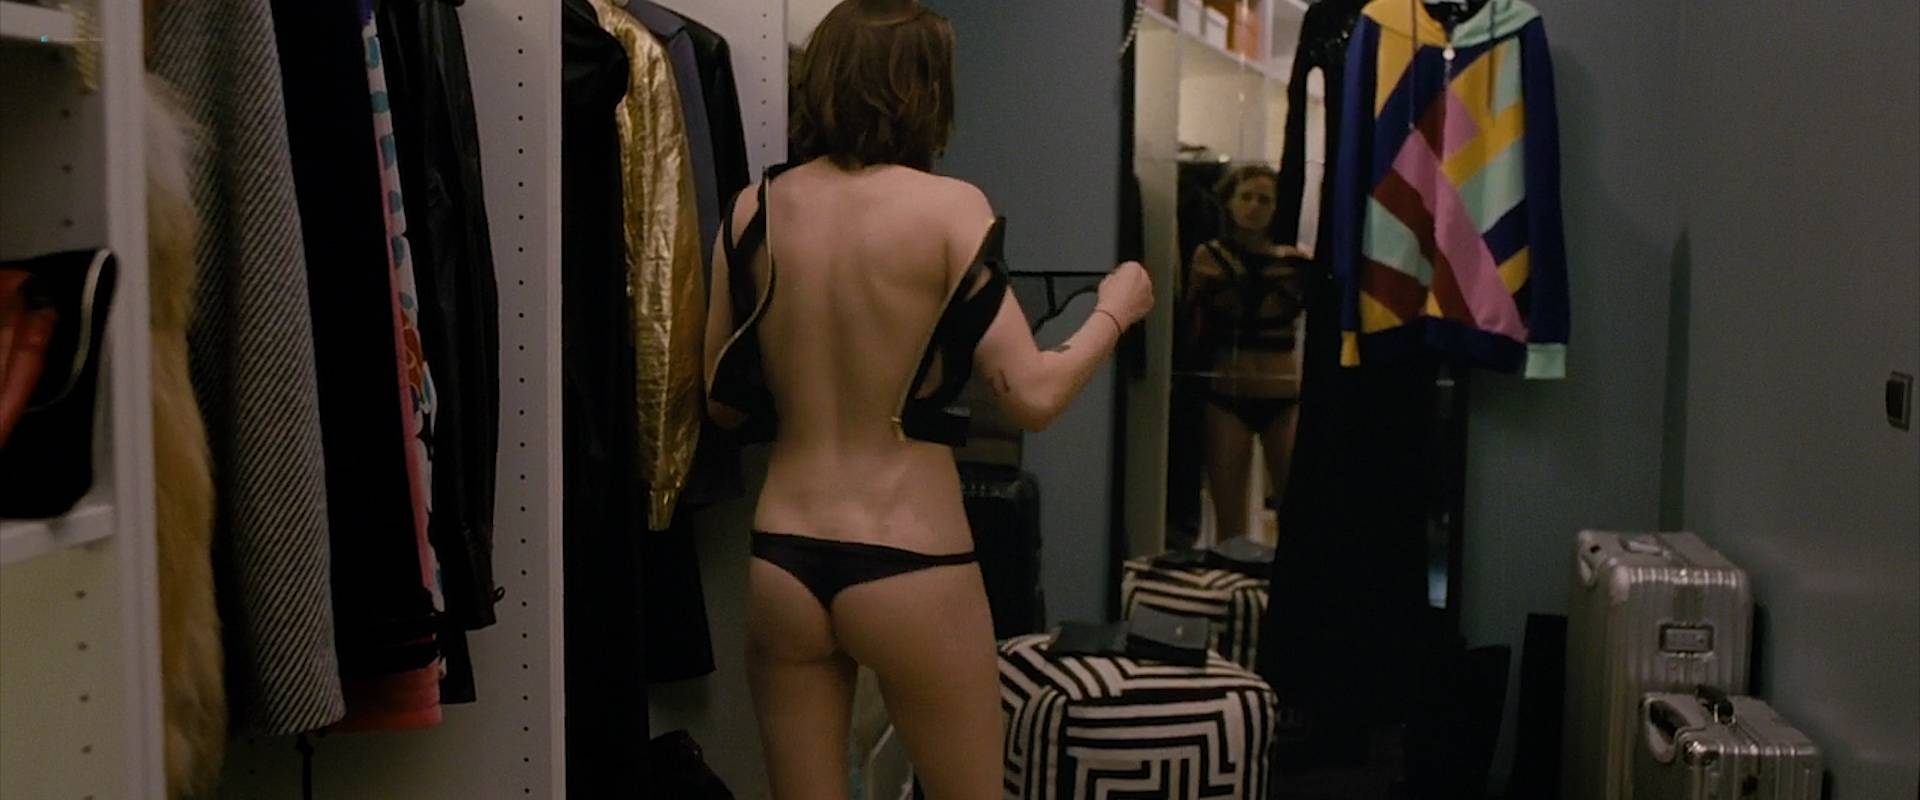 Kristen-Stewart-nude-topless-and-hot-while-masturbating-Personal-Shopper-2016-HD-1080p-WEB-00012.jpg